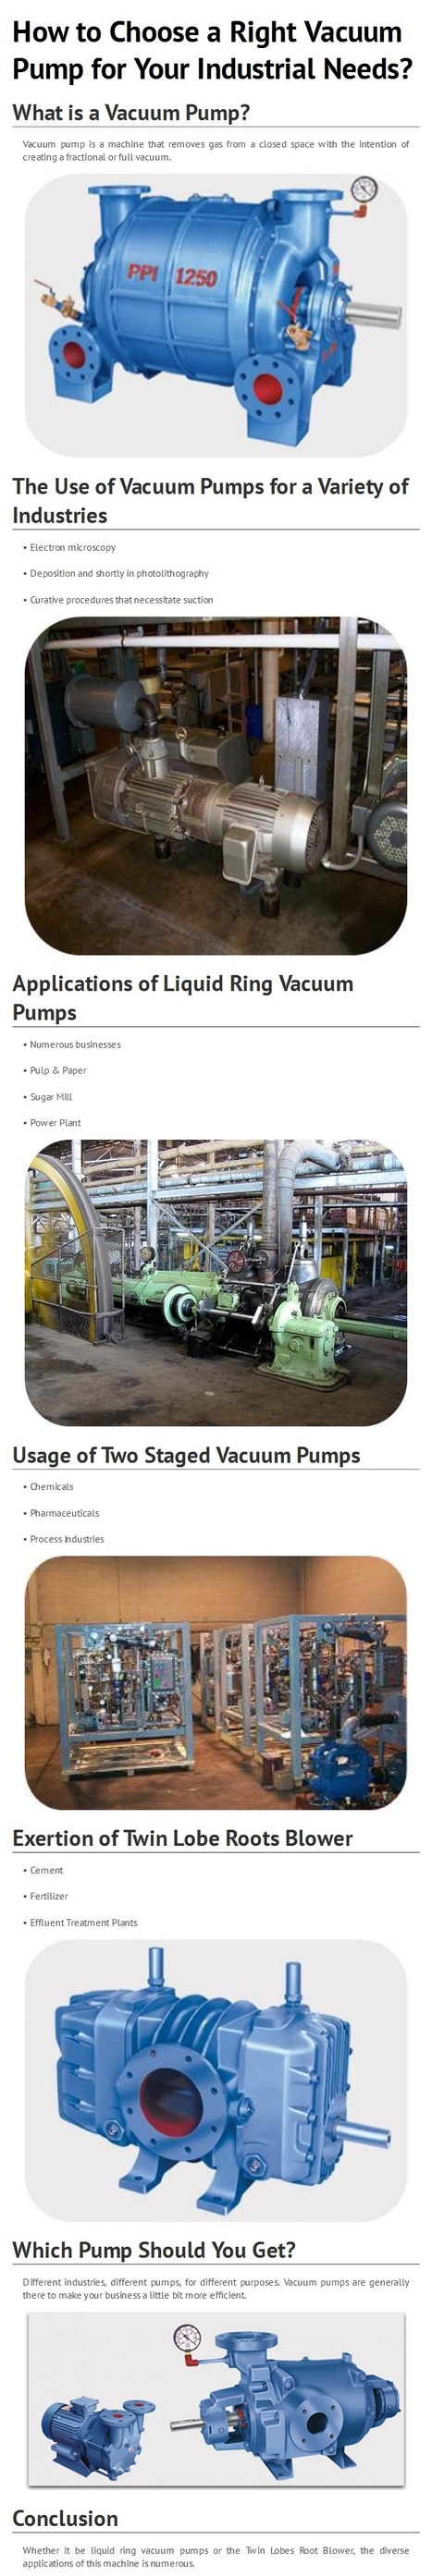 Select Right Vacuum Pump for Your Industrial Needs by www.ppipumps.com | PPI Pumps Pvt. Ltd. | Scoop.it